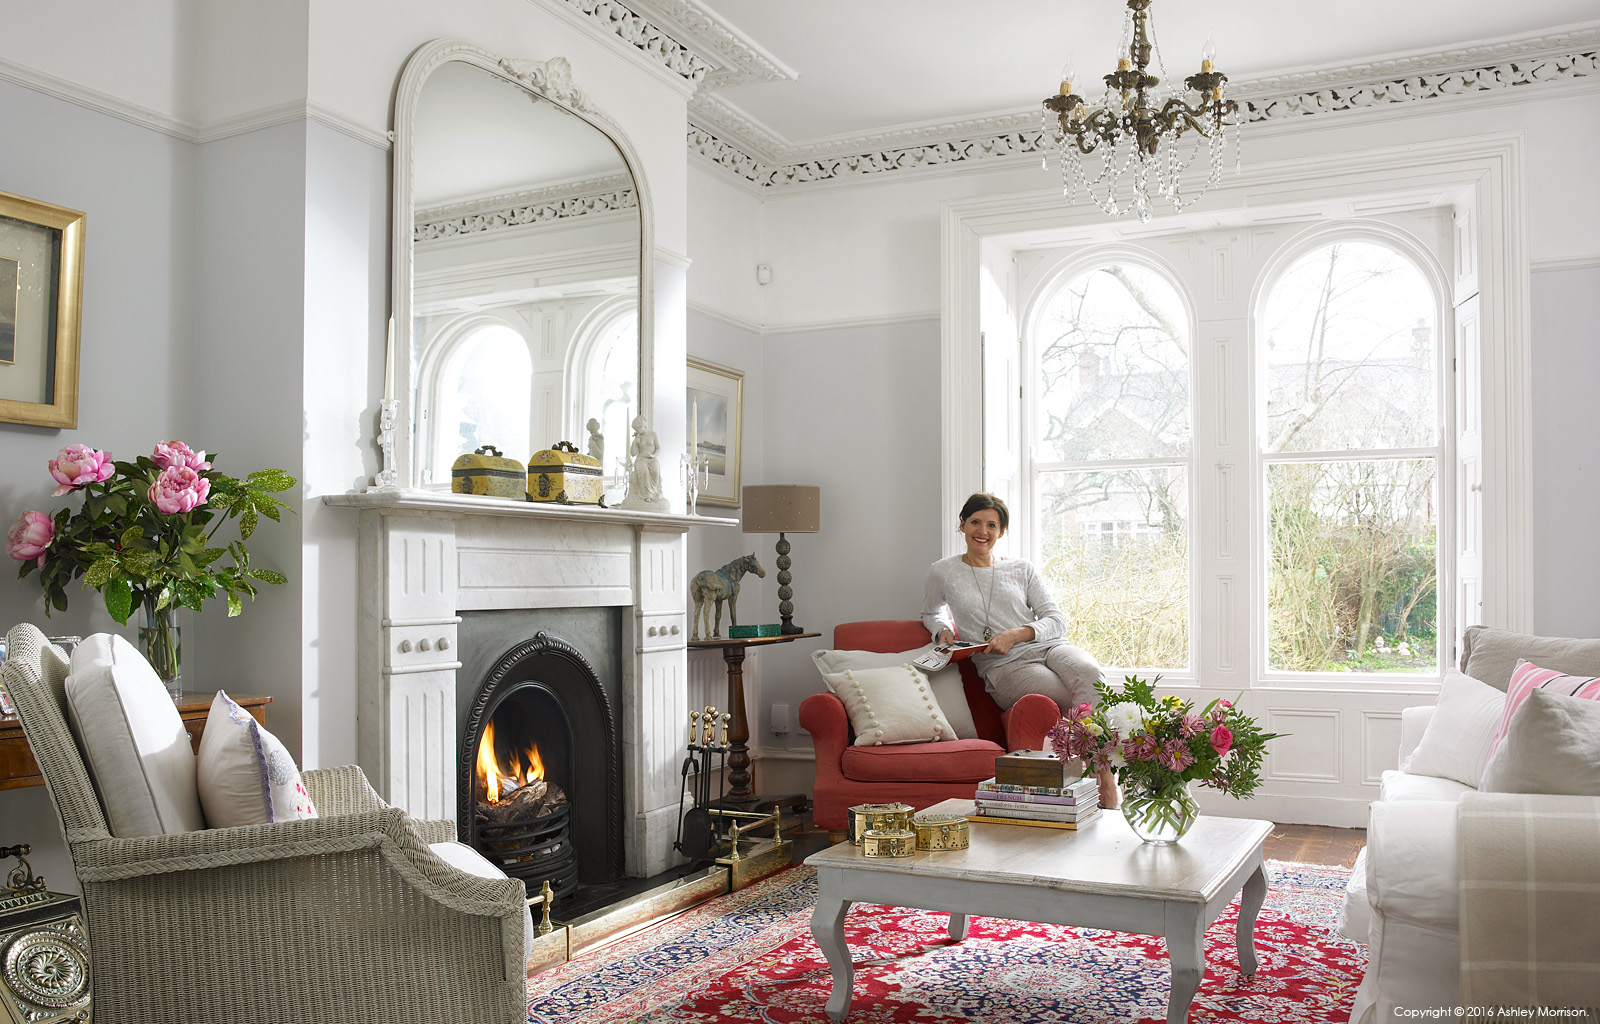 Emma Cooper in the sitting room of her Victorian semi detached house in Belfast.